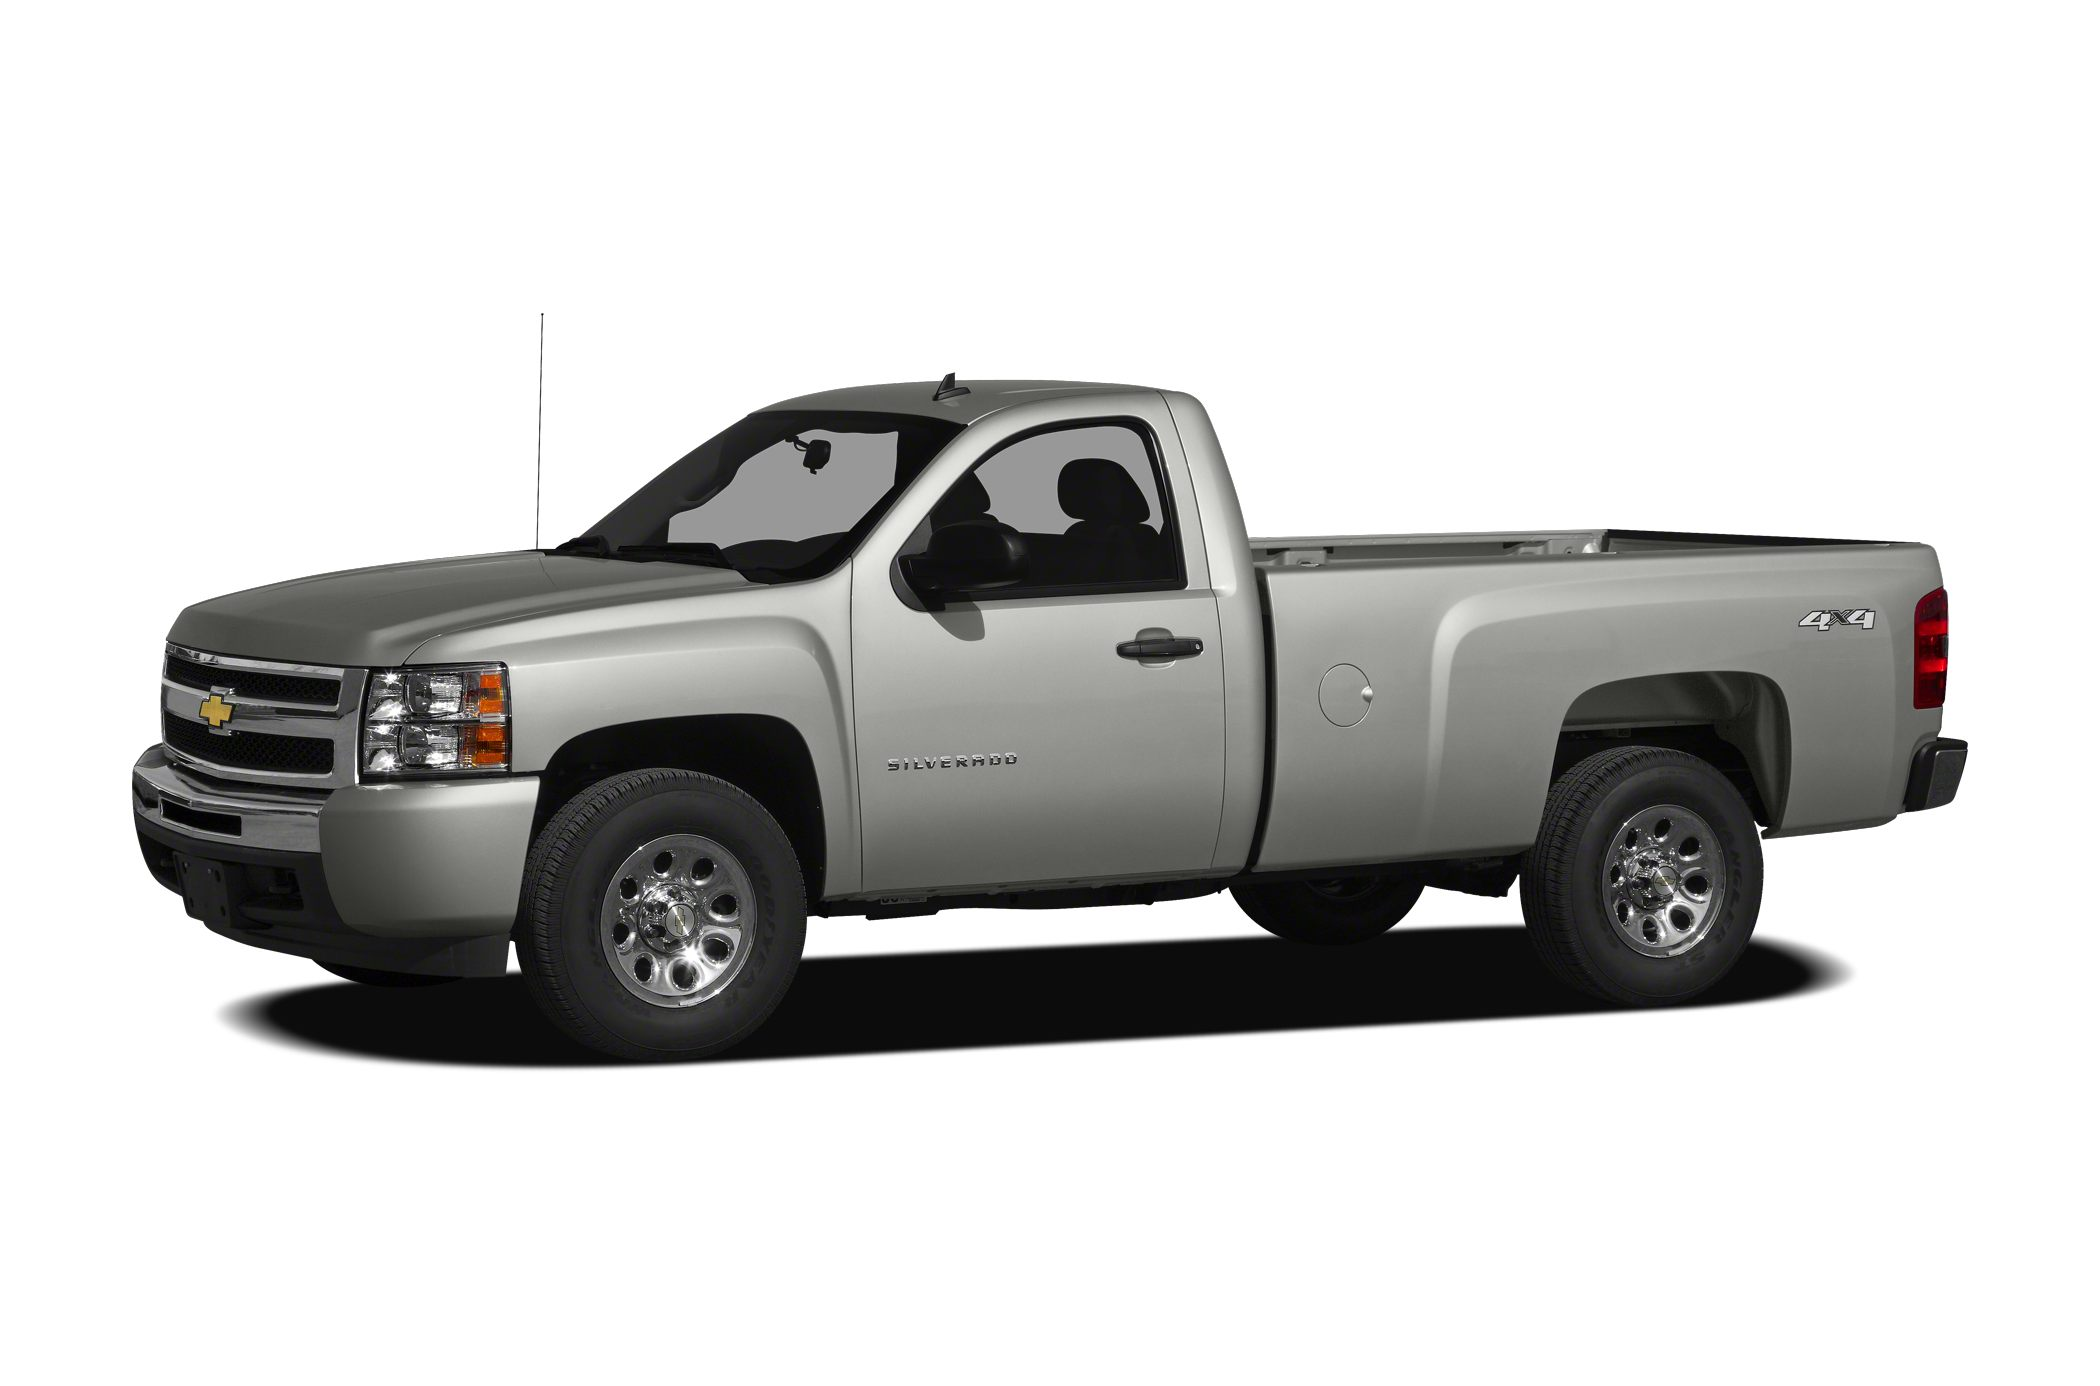 2009 Chevrolet Silverado 1500 LT Extended Cab Pickup for sale in San Antonio for $18,998 with 100,313 miles